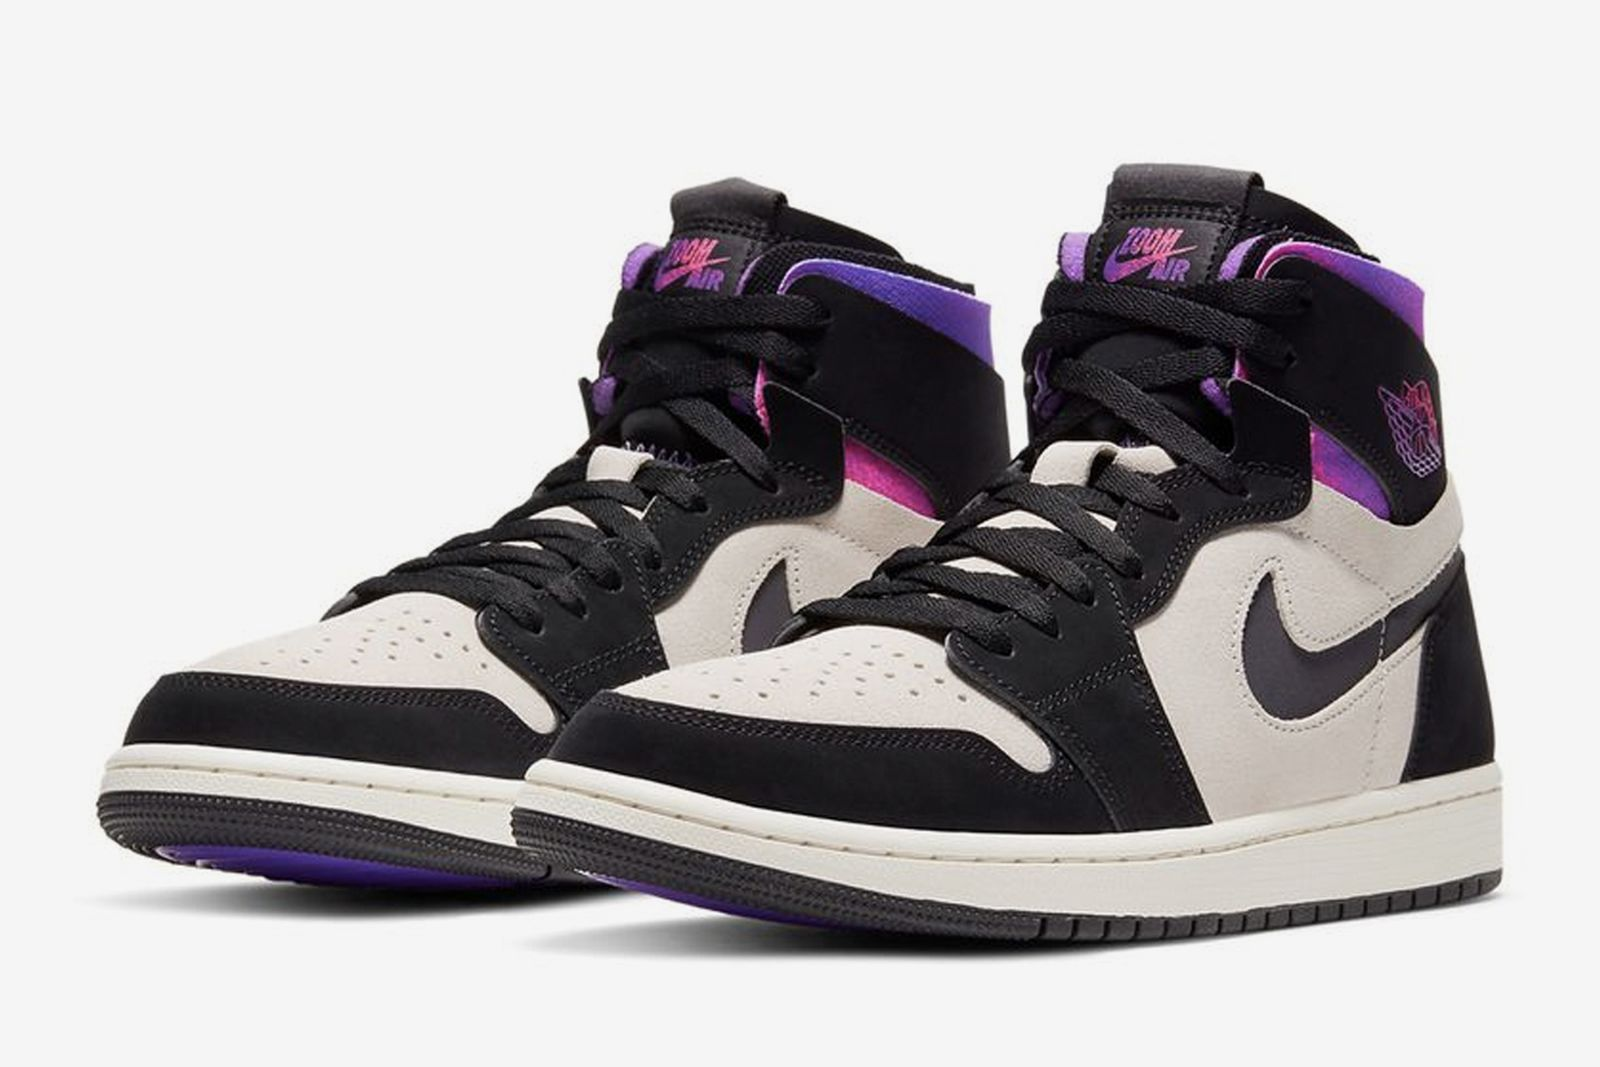 paris-saint-germain-air-jordan-1-high-zoom-cmft-release-date-price-03